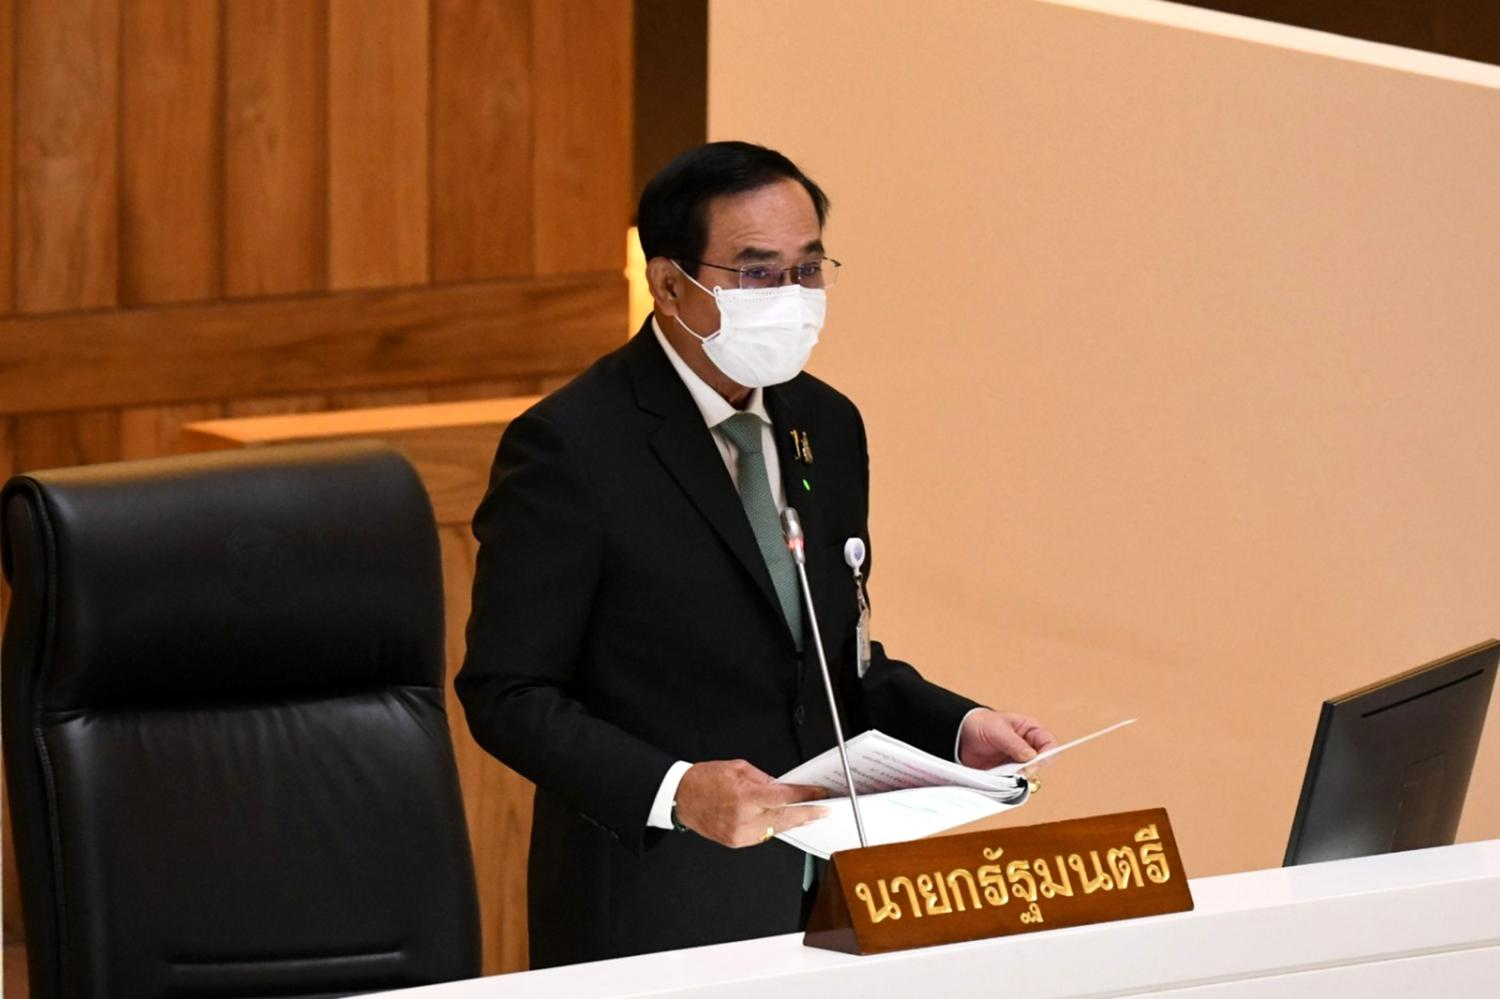 Prime Minister Prayut Chan-o-cha presents the 3.1-trillion-baht budget for the 2022 fiscal year to the Lower House on Monday.(Parliament photo)